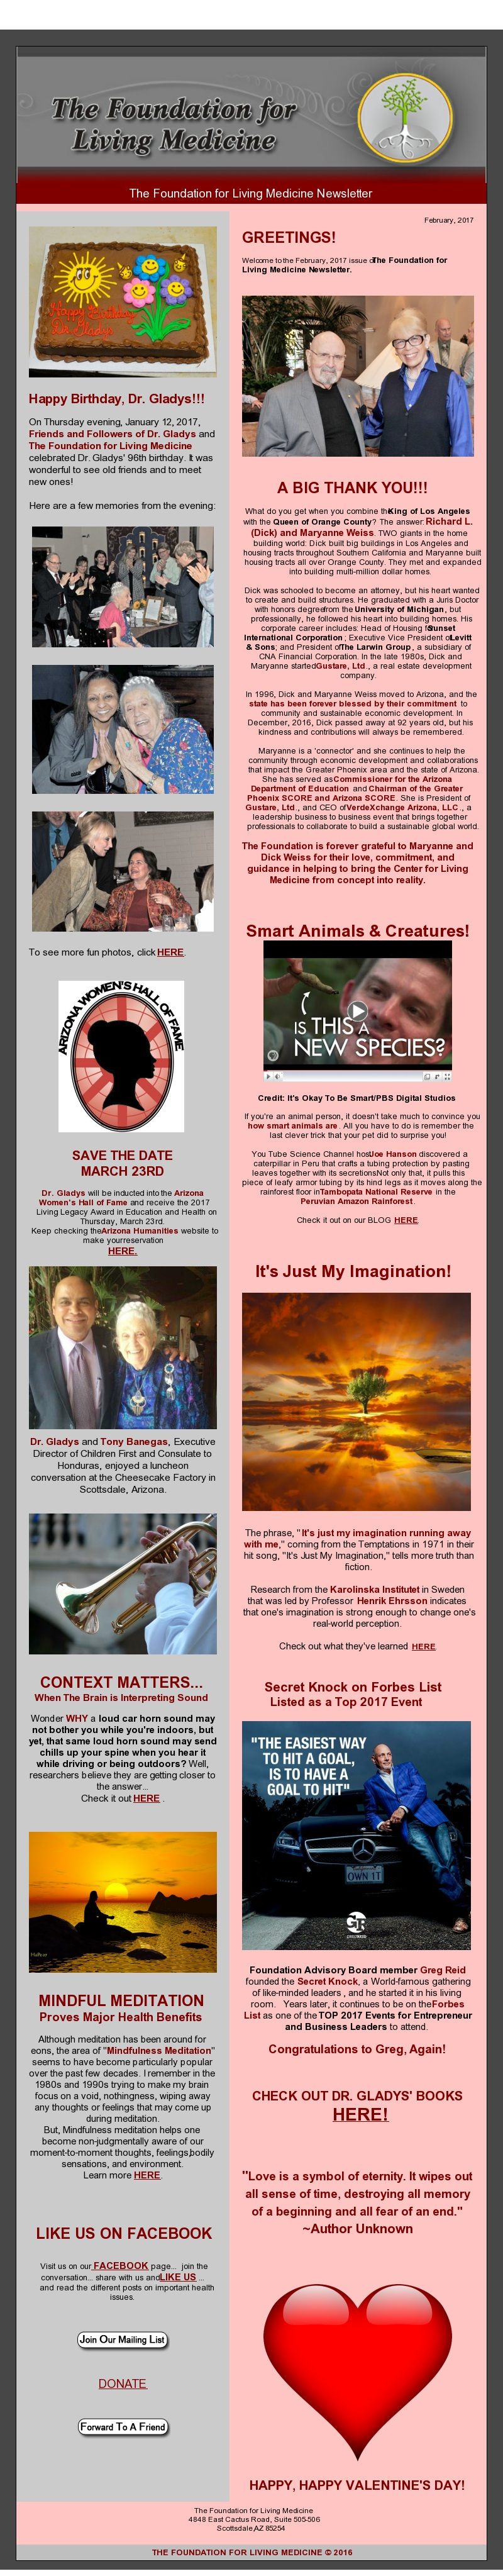 flm_newsletter_february_2017.jpg